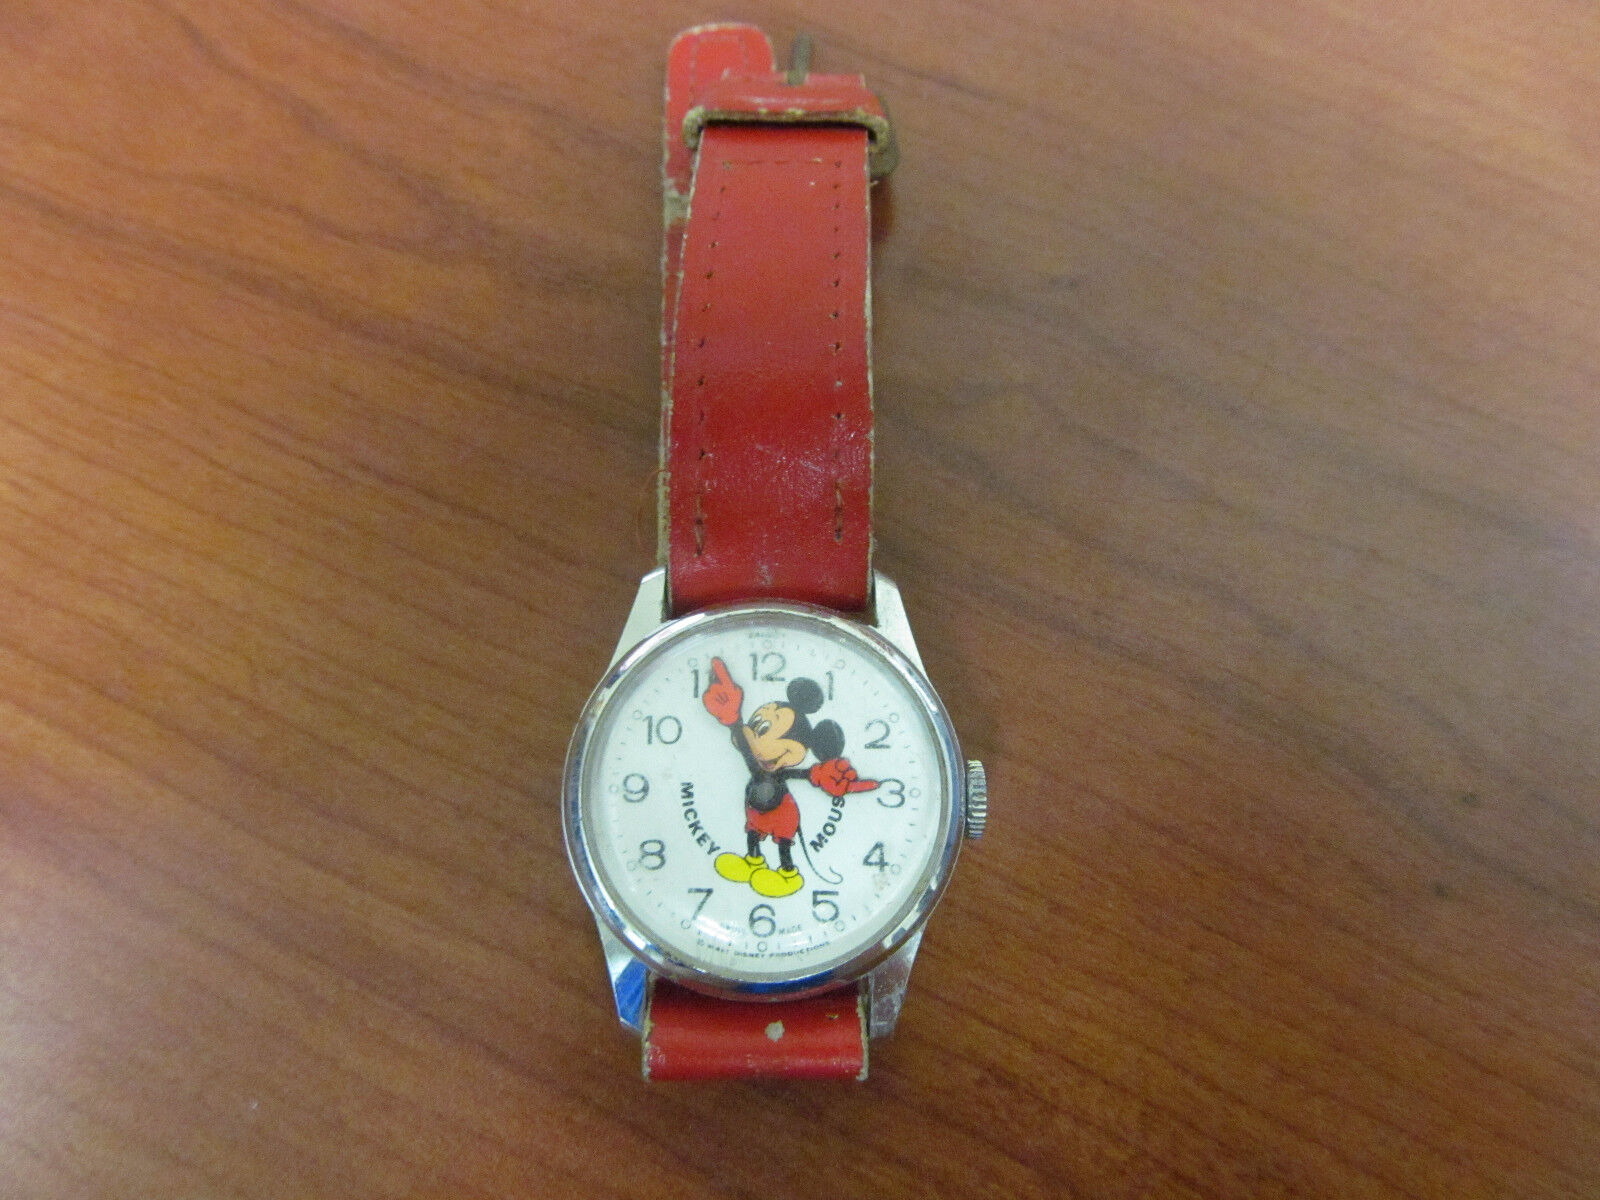 Vintage bradley mickey mouse wrist watch swiss made wind up watch 14628o picclick for Swiss made watches